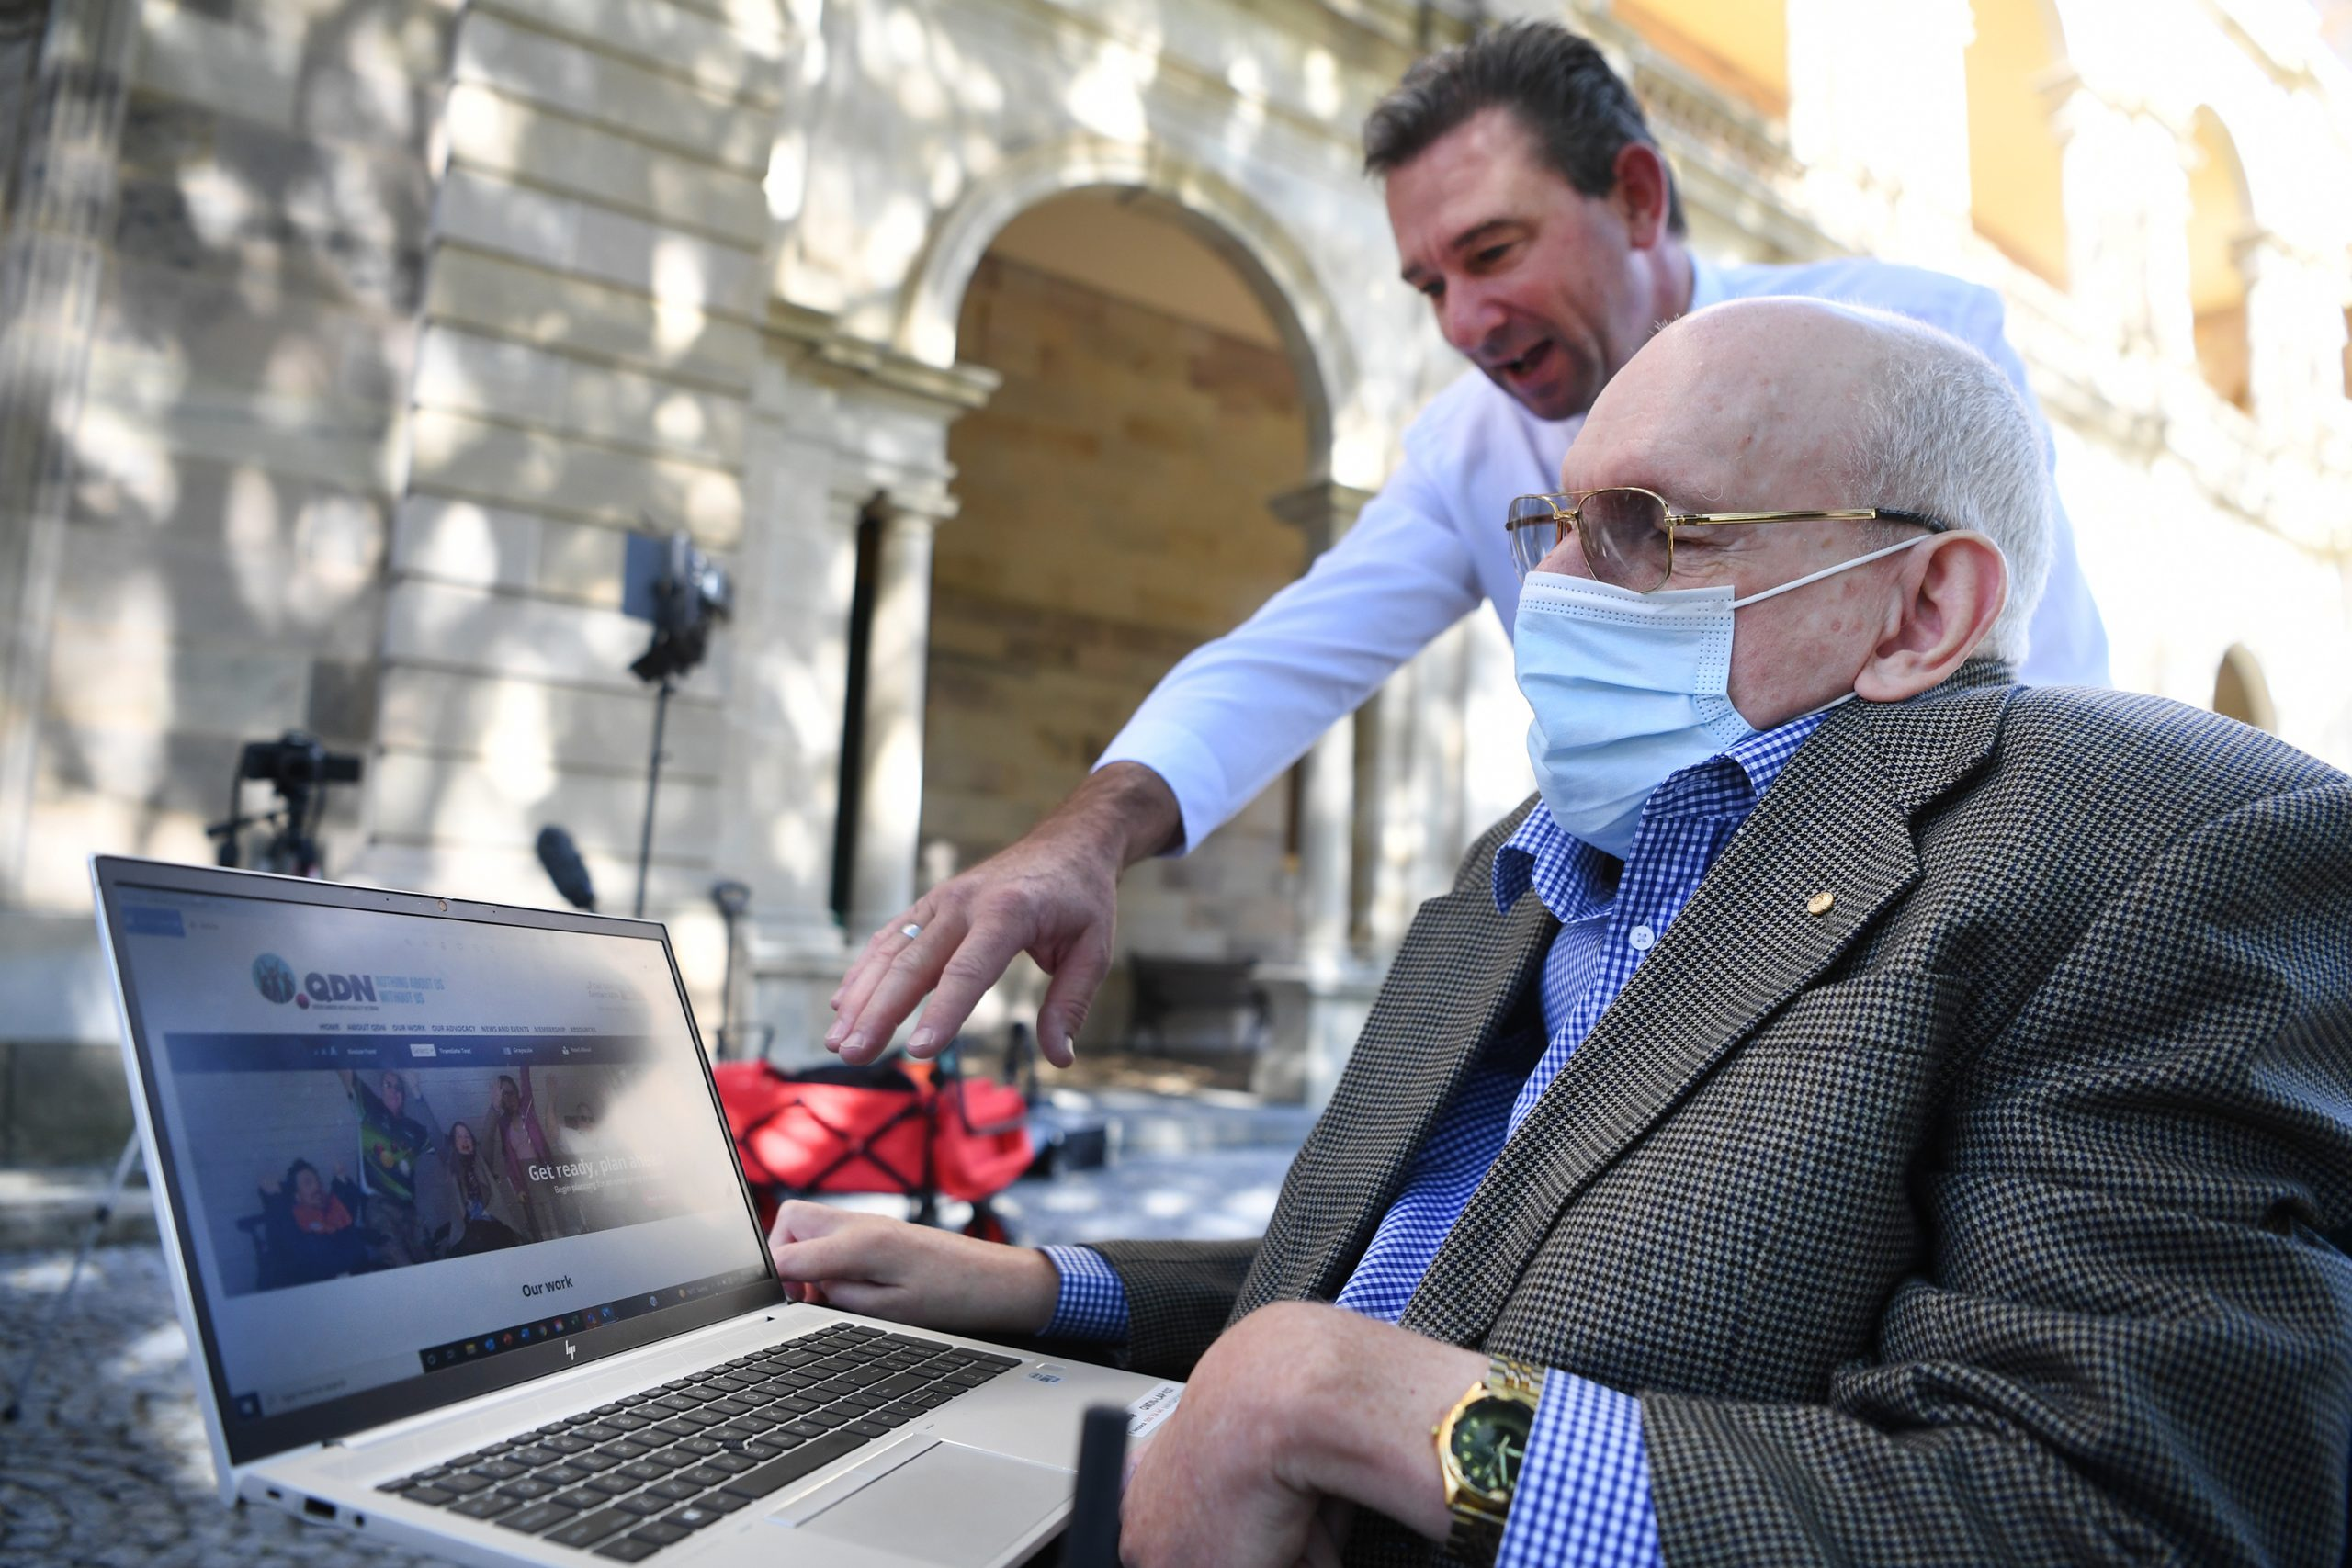 Two men outside. There is a man sitting in a wheelchair. He has a laptop on a table in front of him. Another man is standing and looking over his shoulder, pointing to the laptop screen.